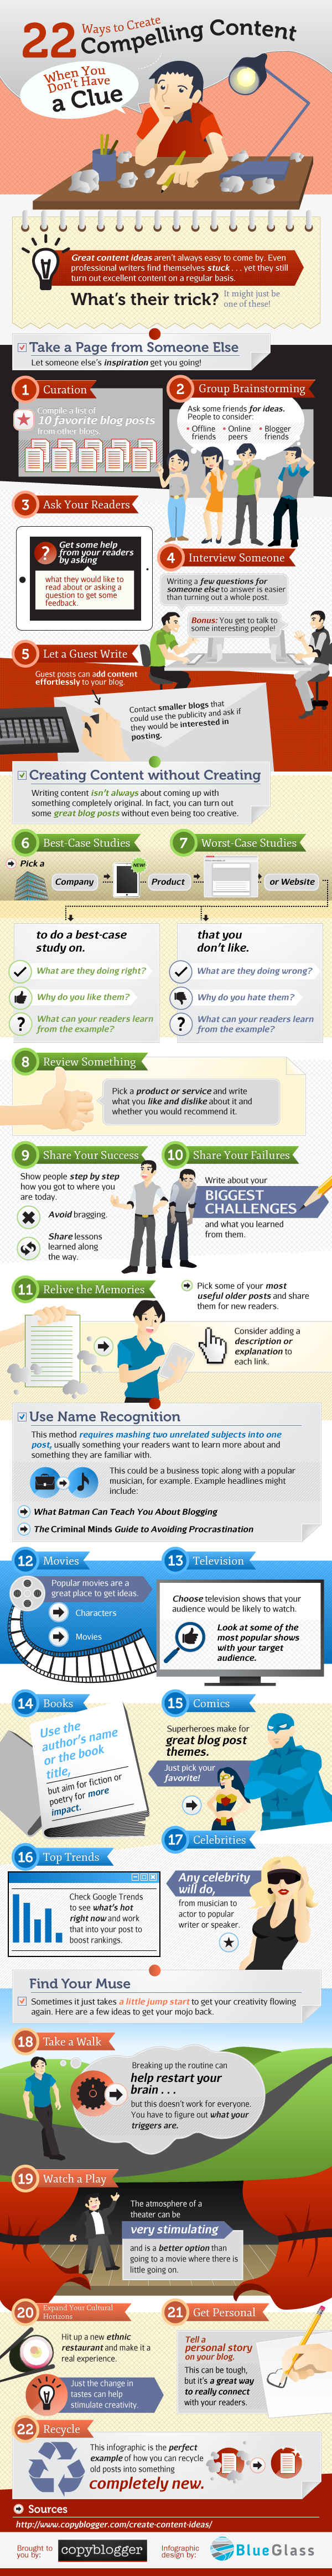 Ways To Create Compelling Content-infographic